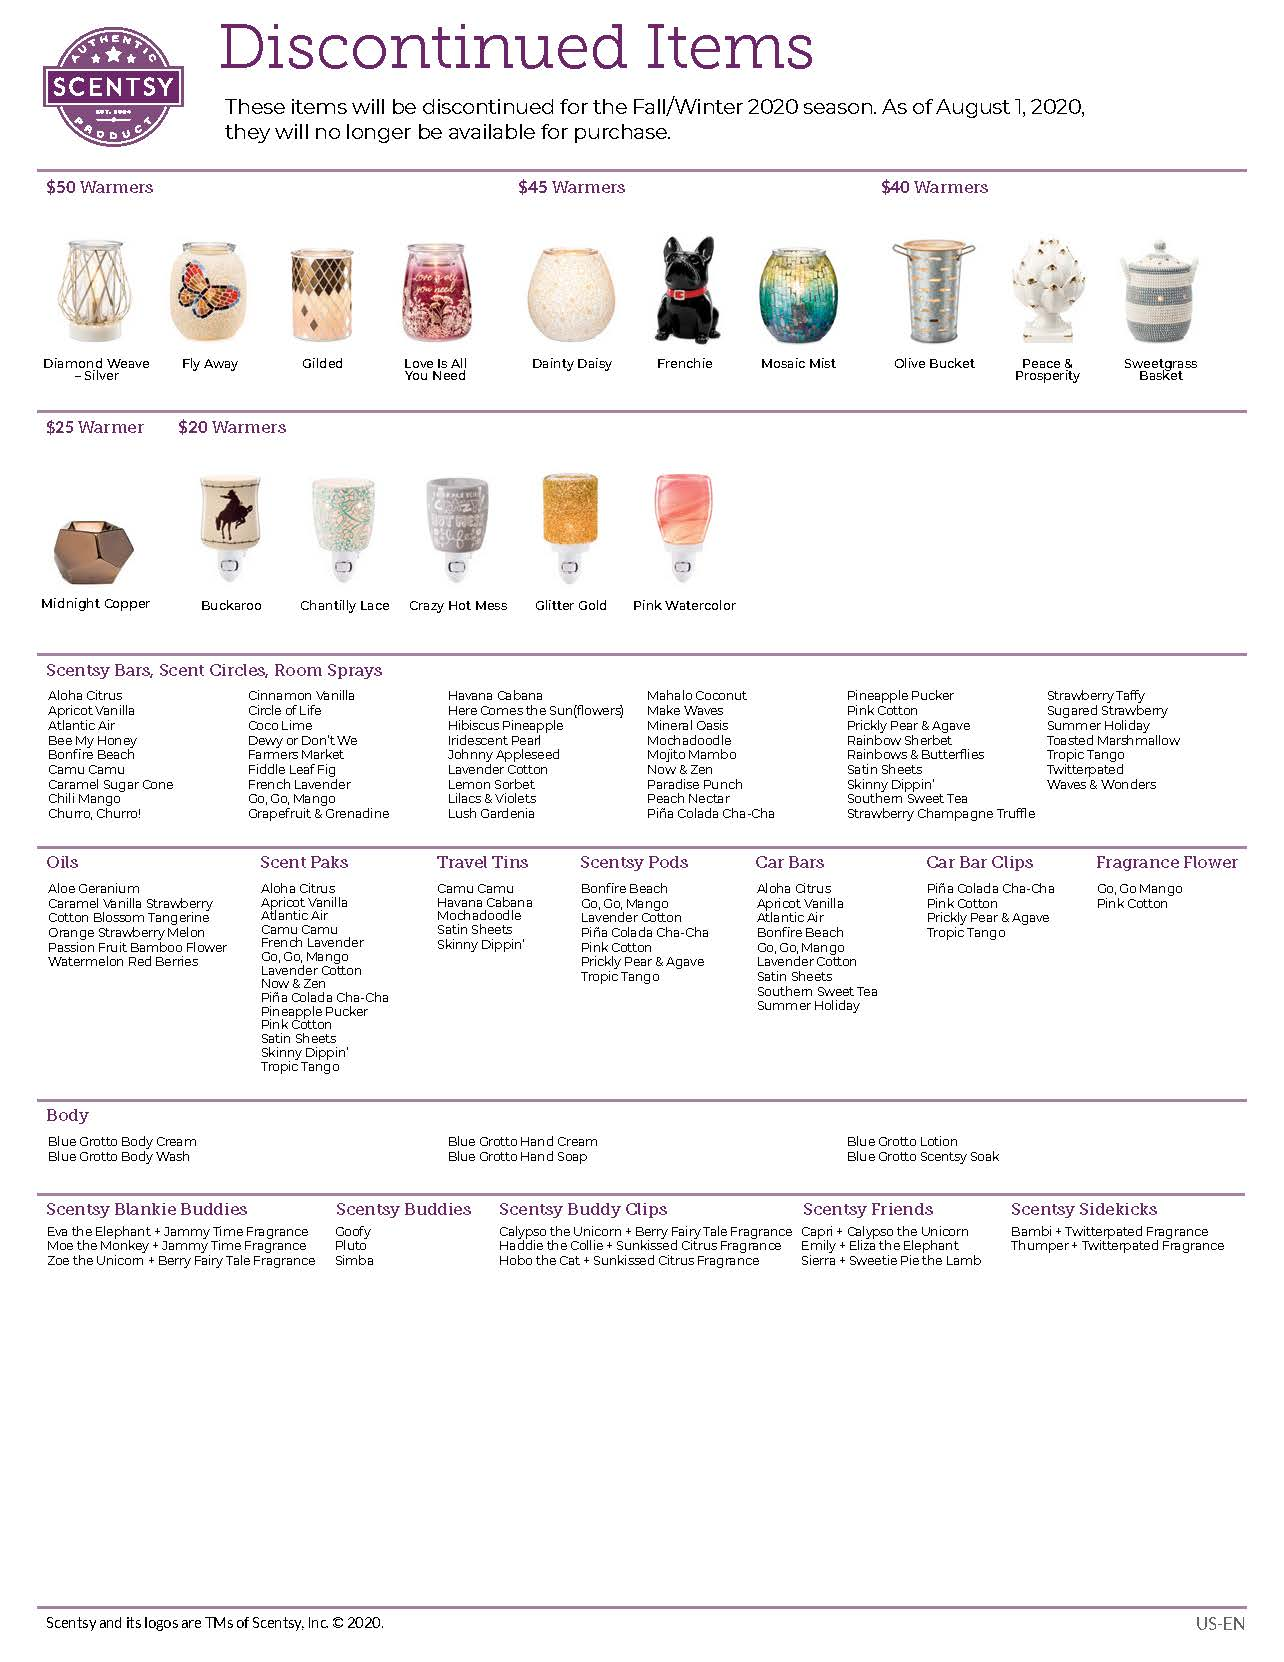 Scentsy 2020 Spring Summer Discontinued List